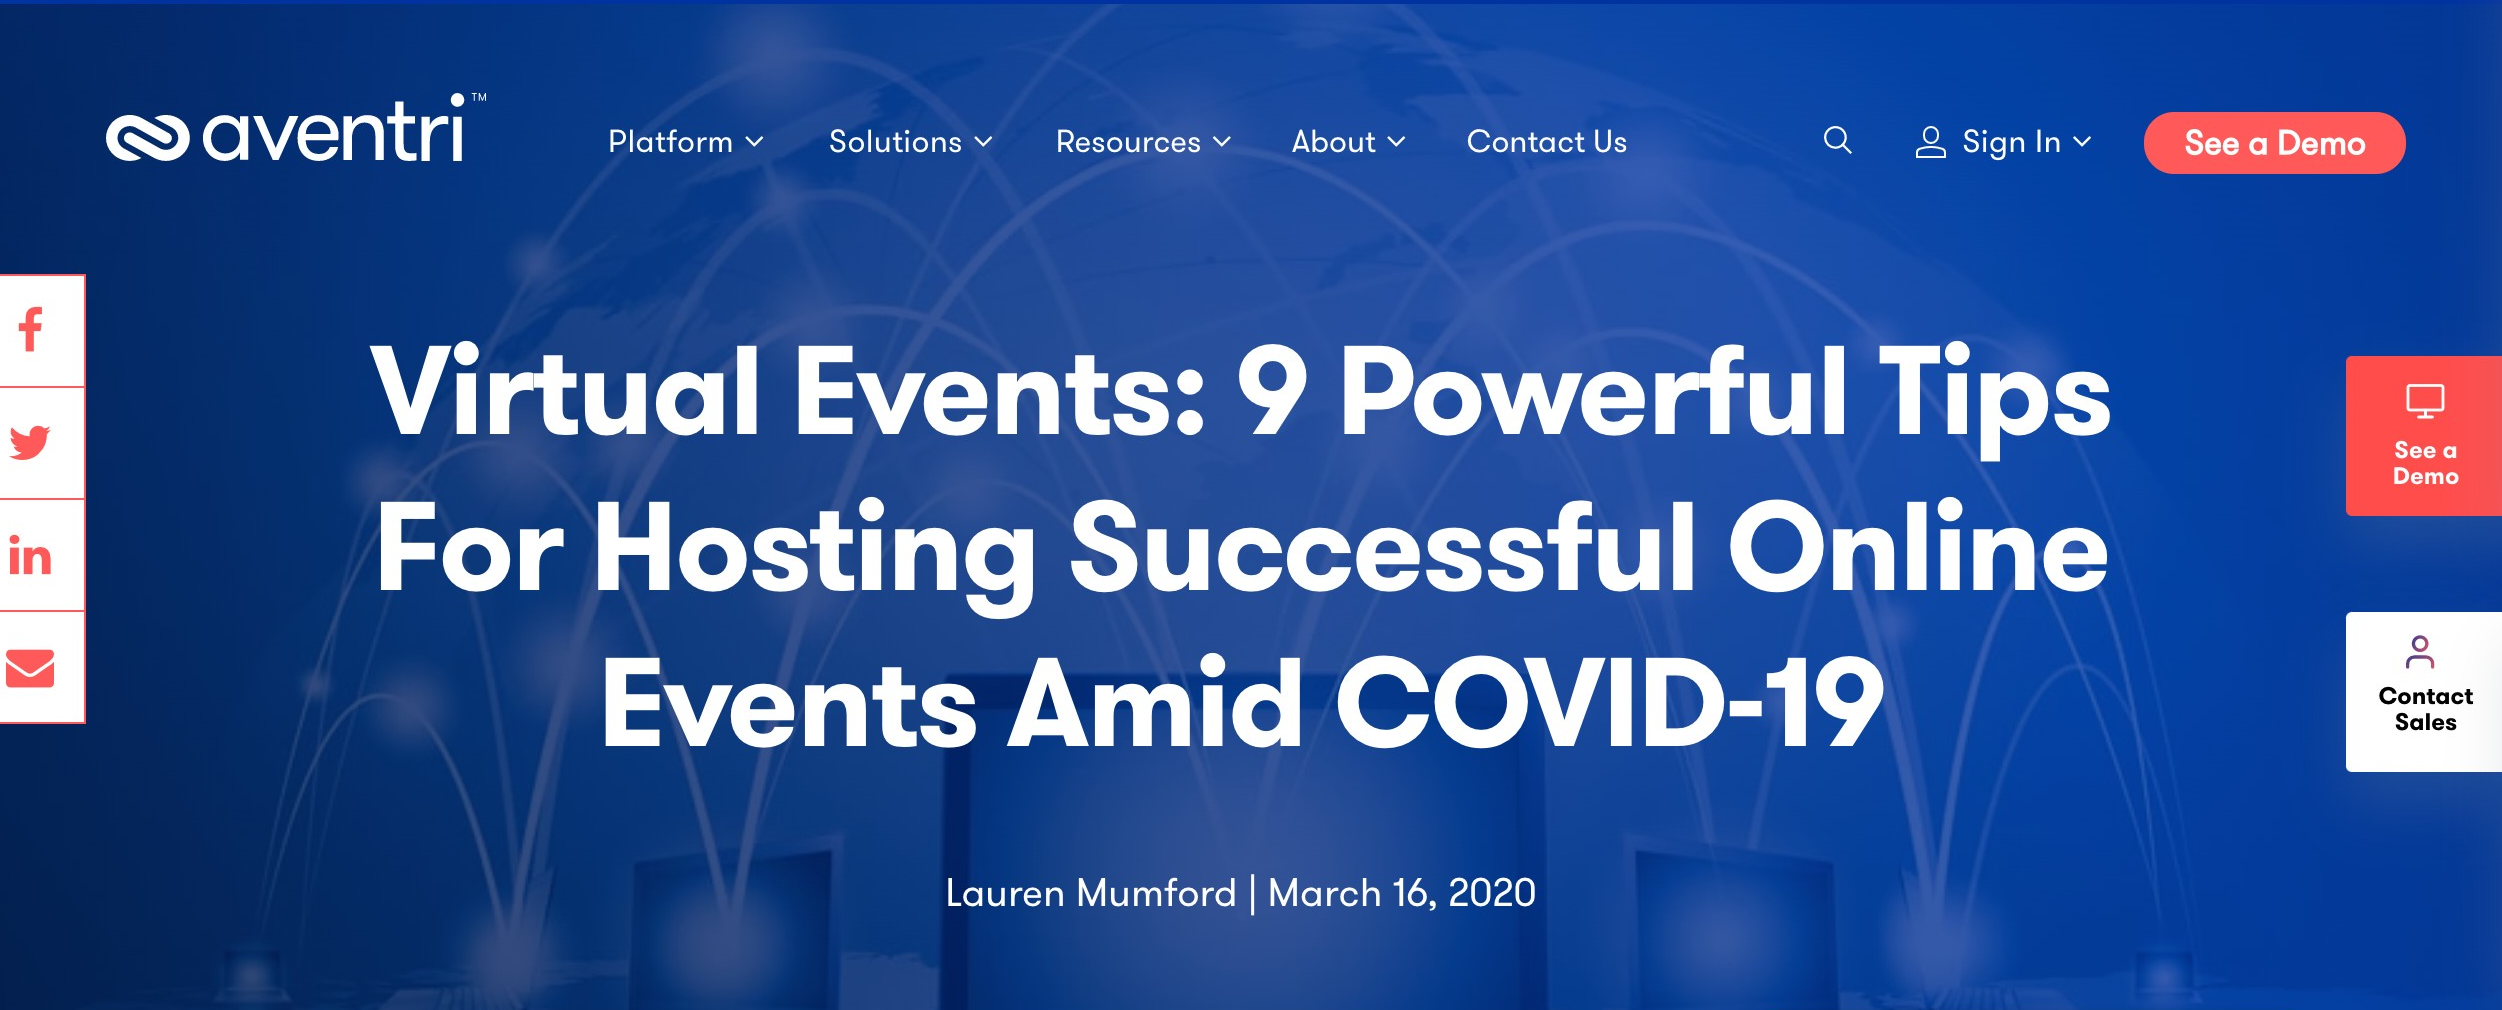 Virtual Events: 9 Powerful Tips For Hosting Successful Online Events